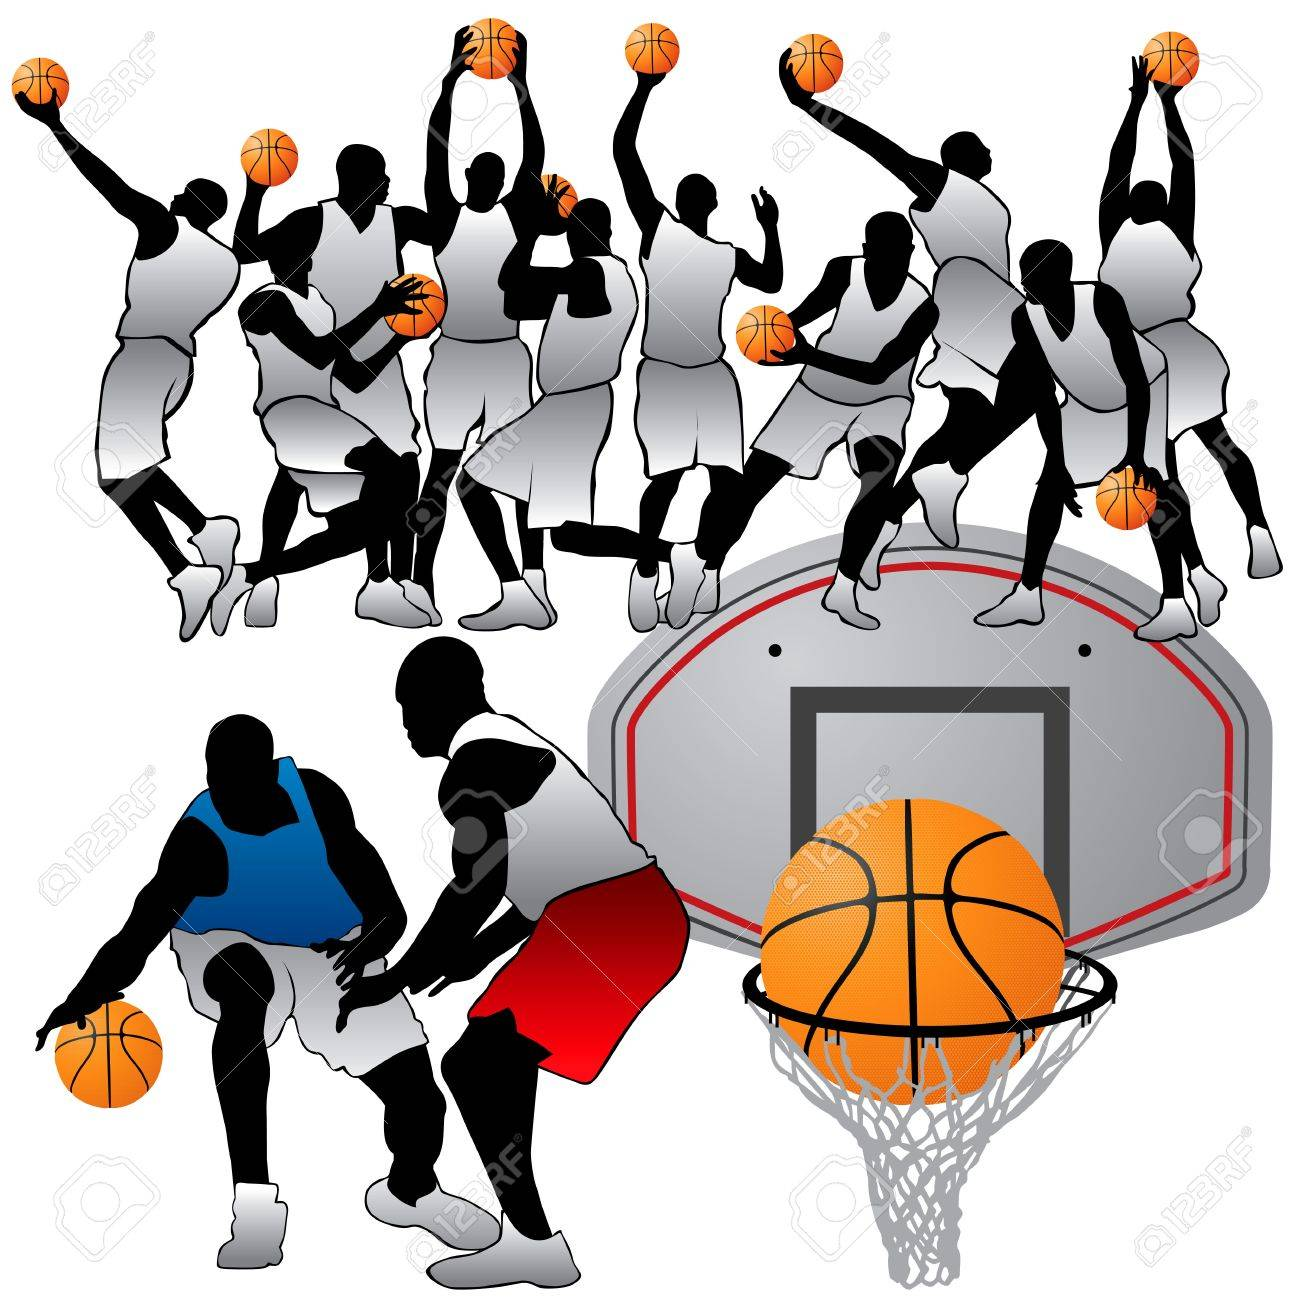 Basketball Players Silhouettes Set Stock Vector - 9995076